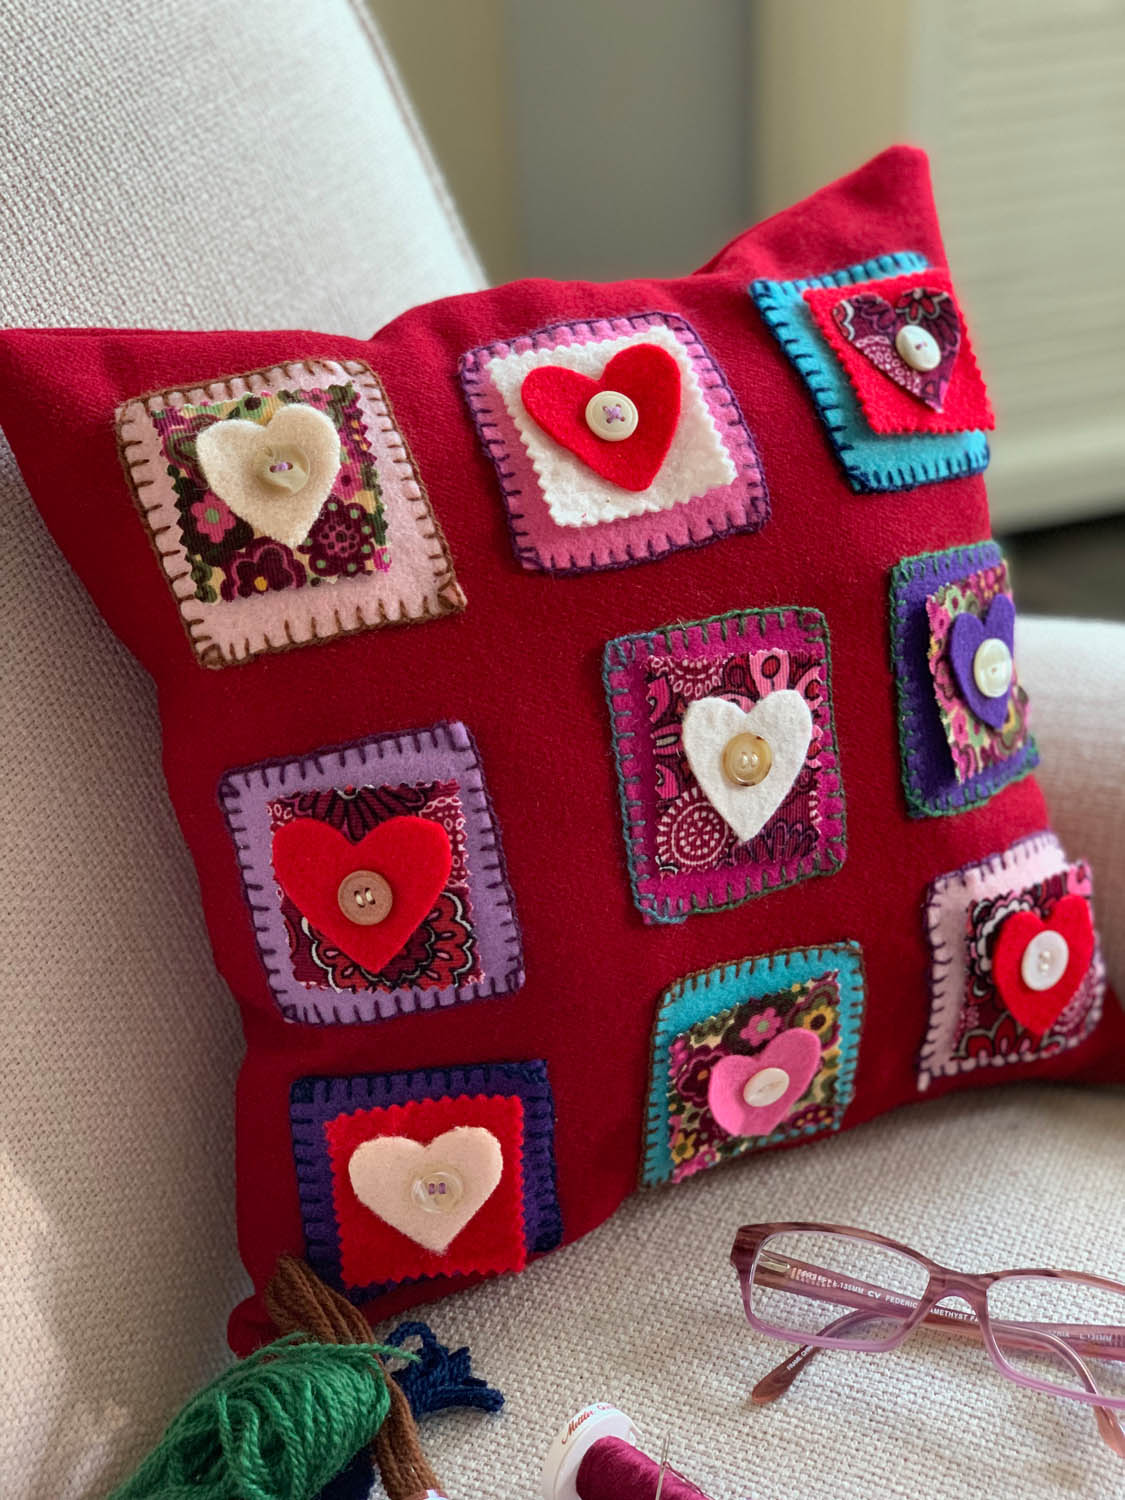 finished folksy felted Valentine's Day heart nine-patch pillow with hand embroidery and buttons